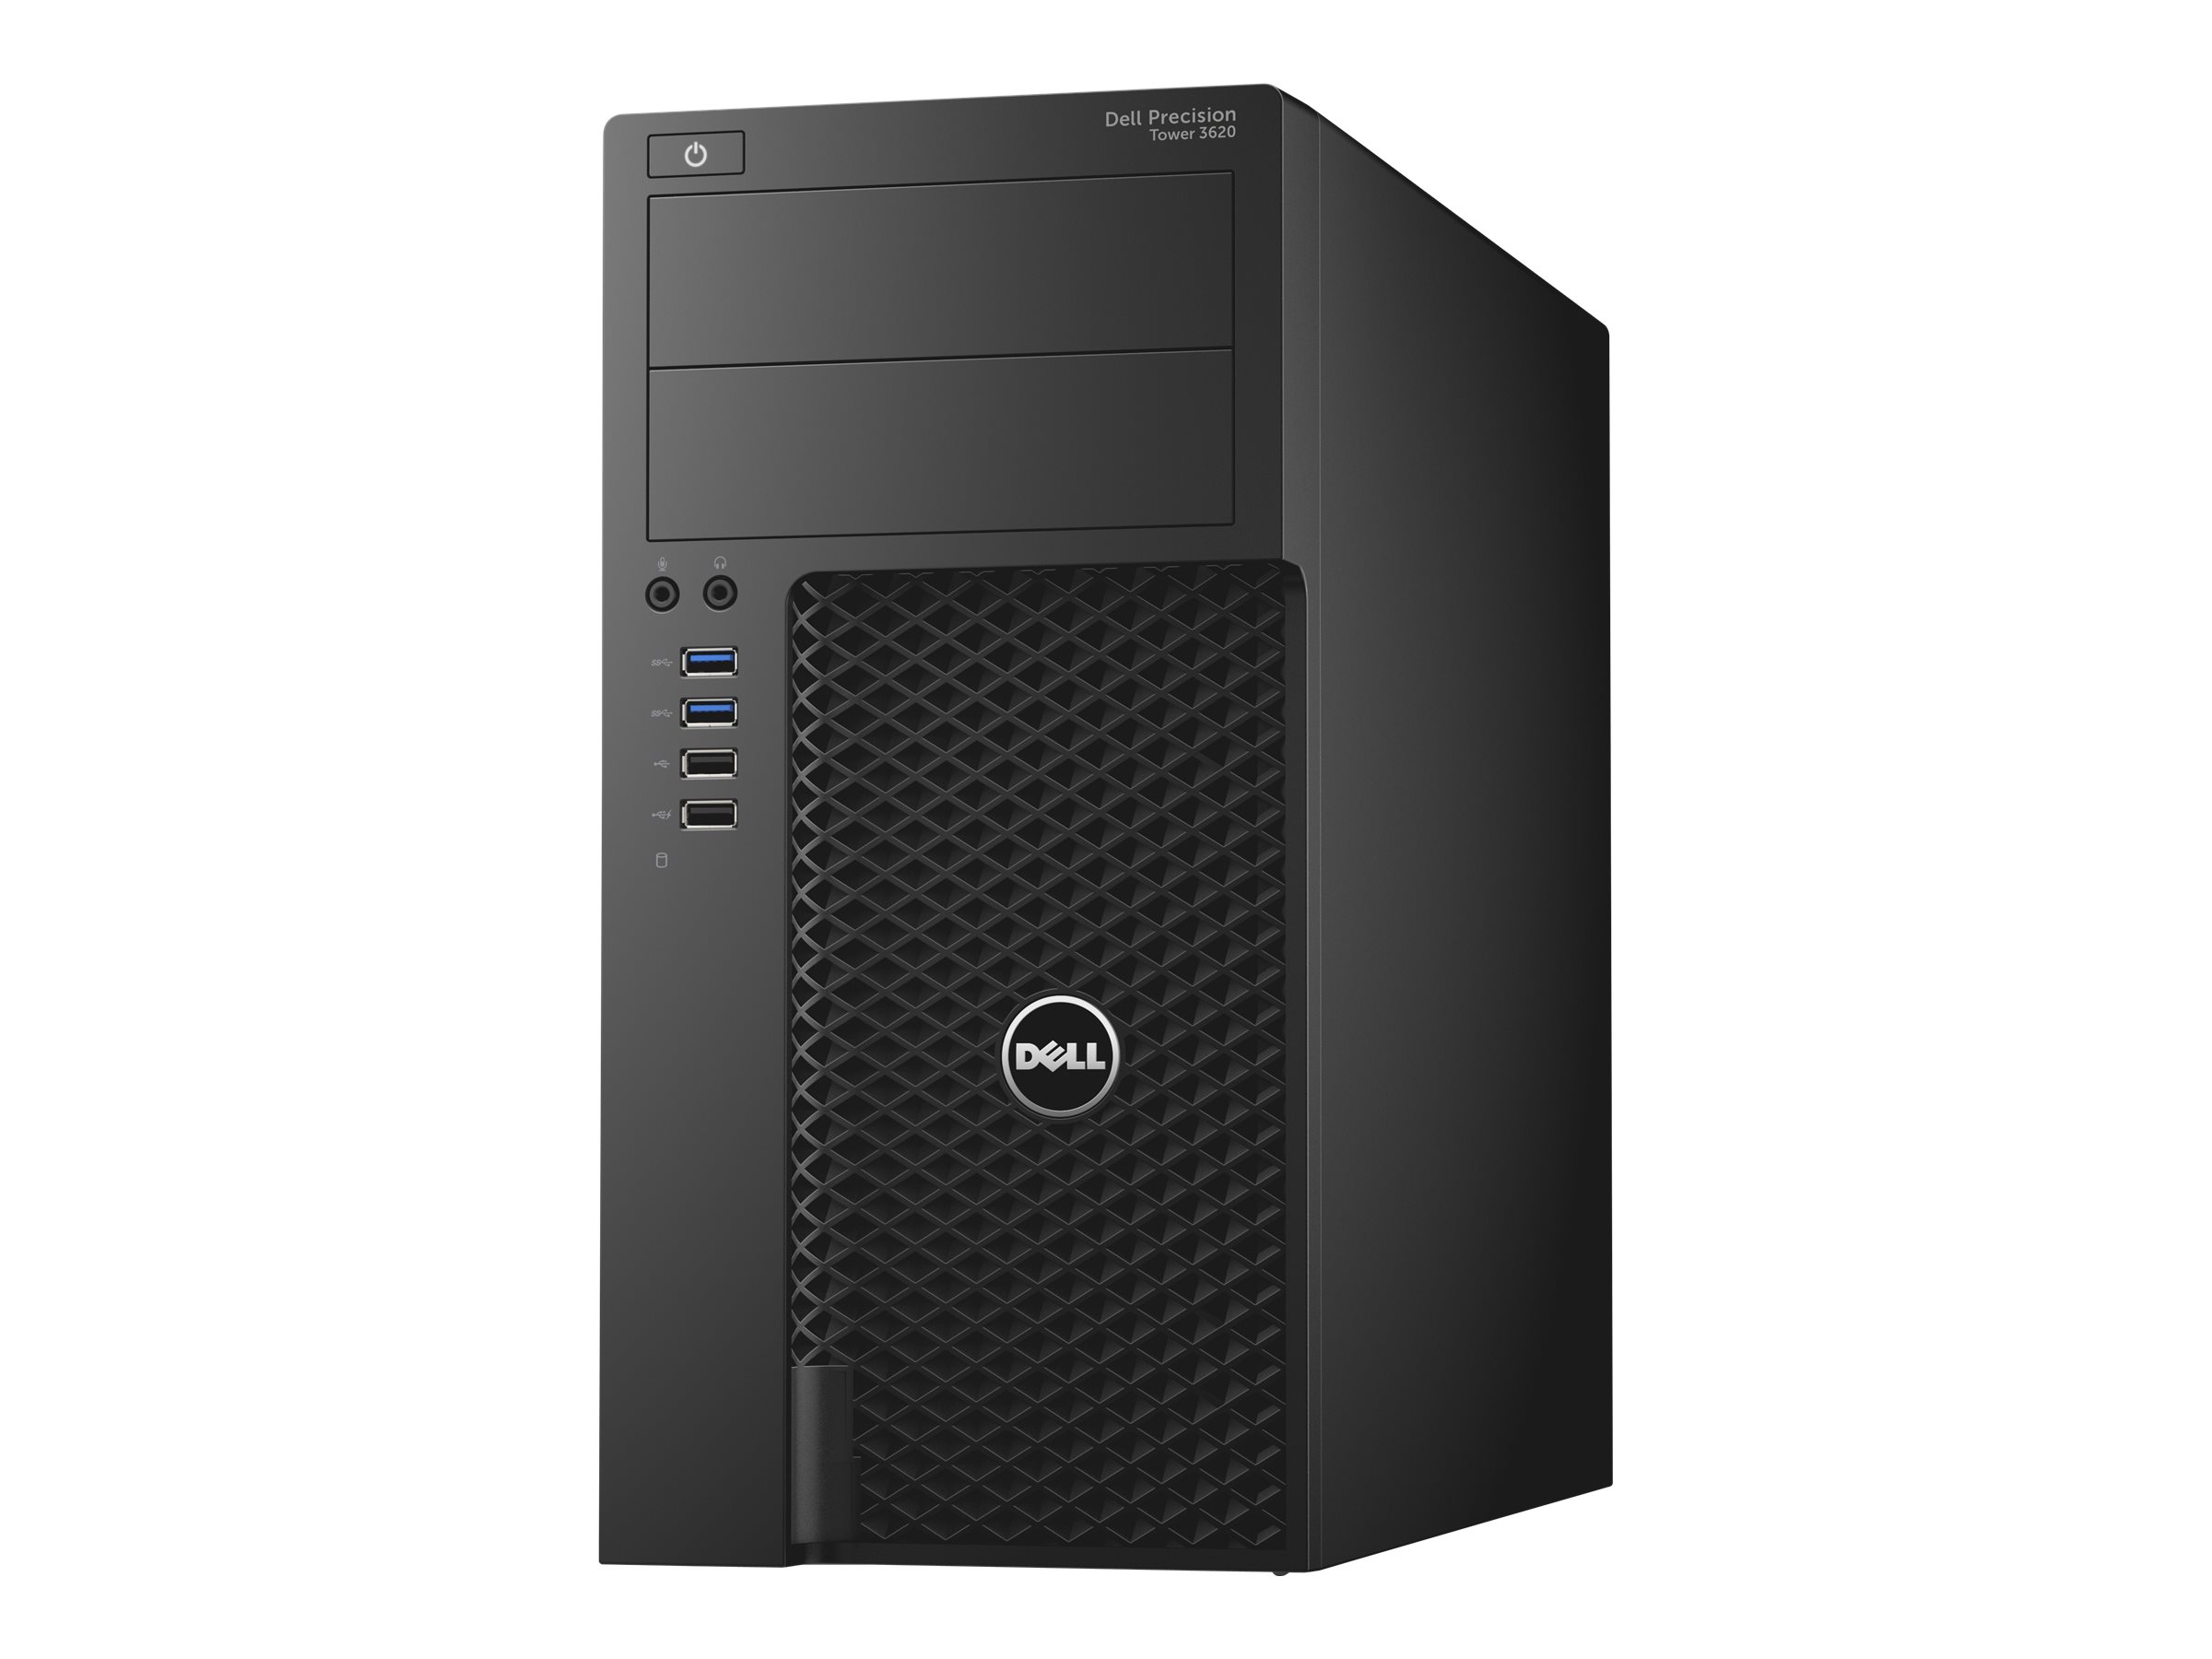 Dell Precision Tower 3620 - MT - 1 x Core i7 6700 / 3.4 GHz - RAM 8 GB - HDD 1 TB - DVD-Writer